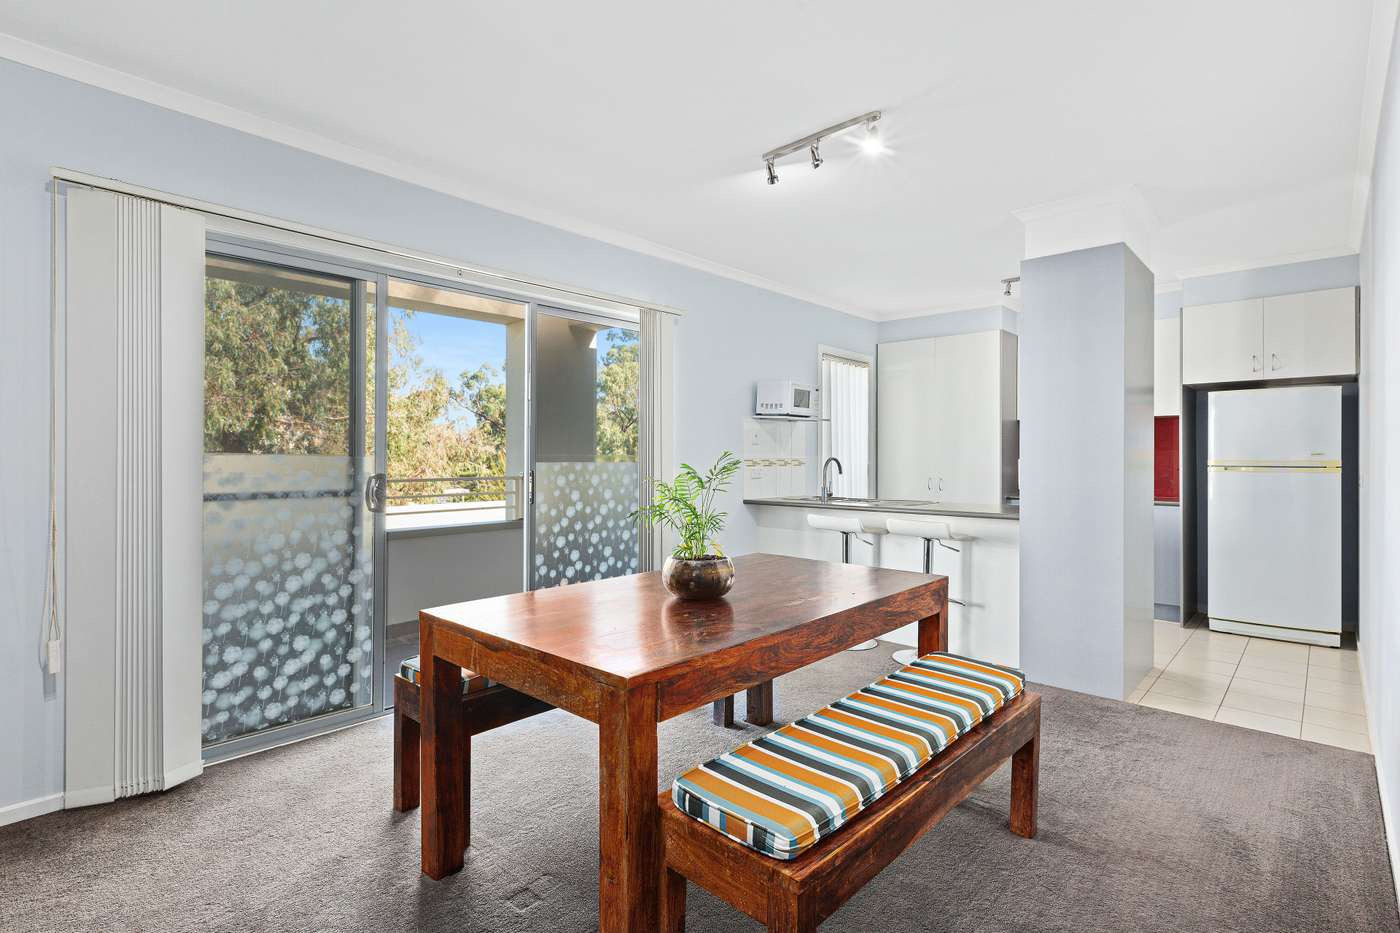 Main view of Homely apartment listing, 18/25 Lats Avenue, Carrum Downs, VIC 3201